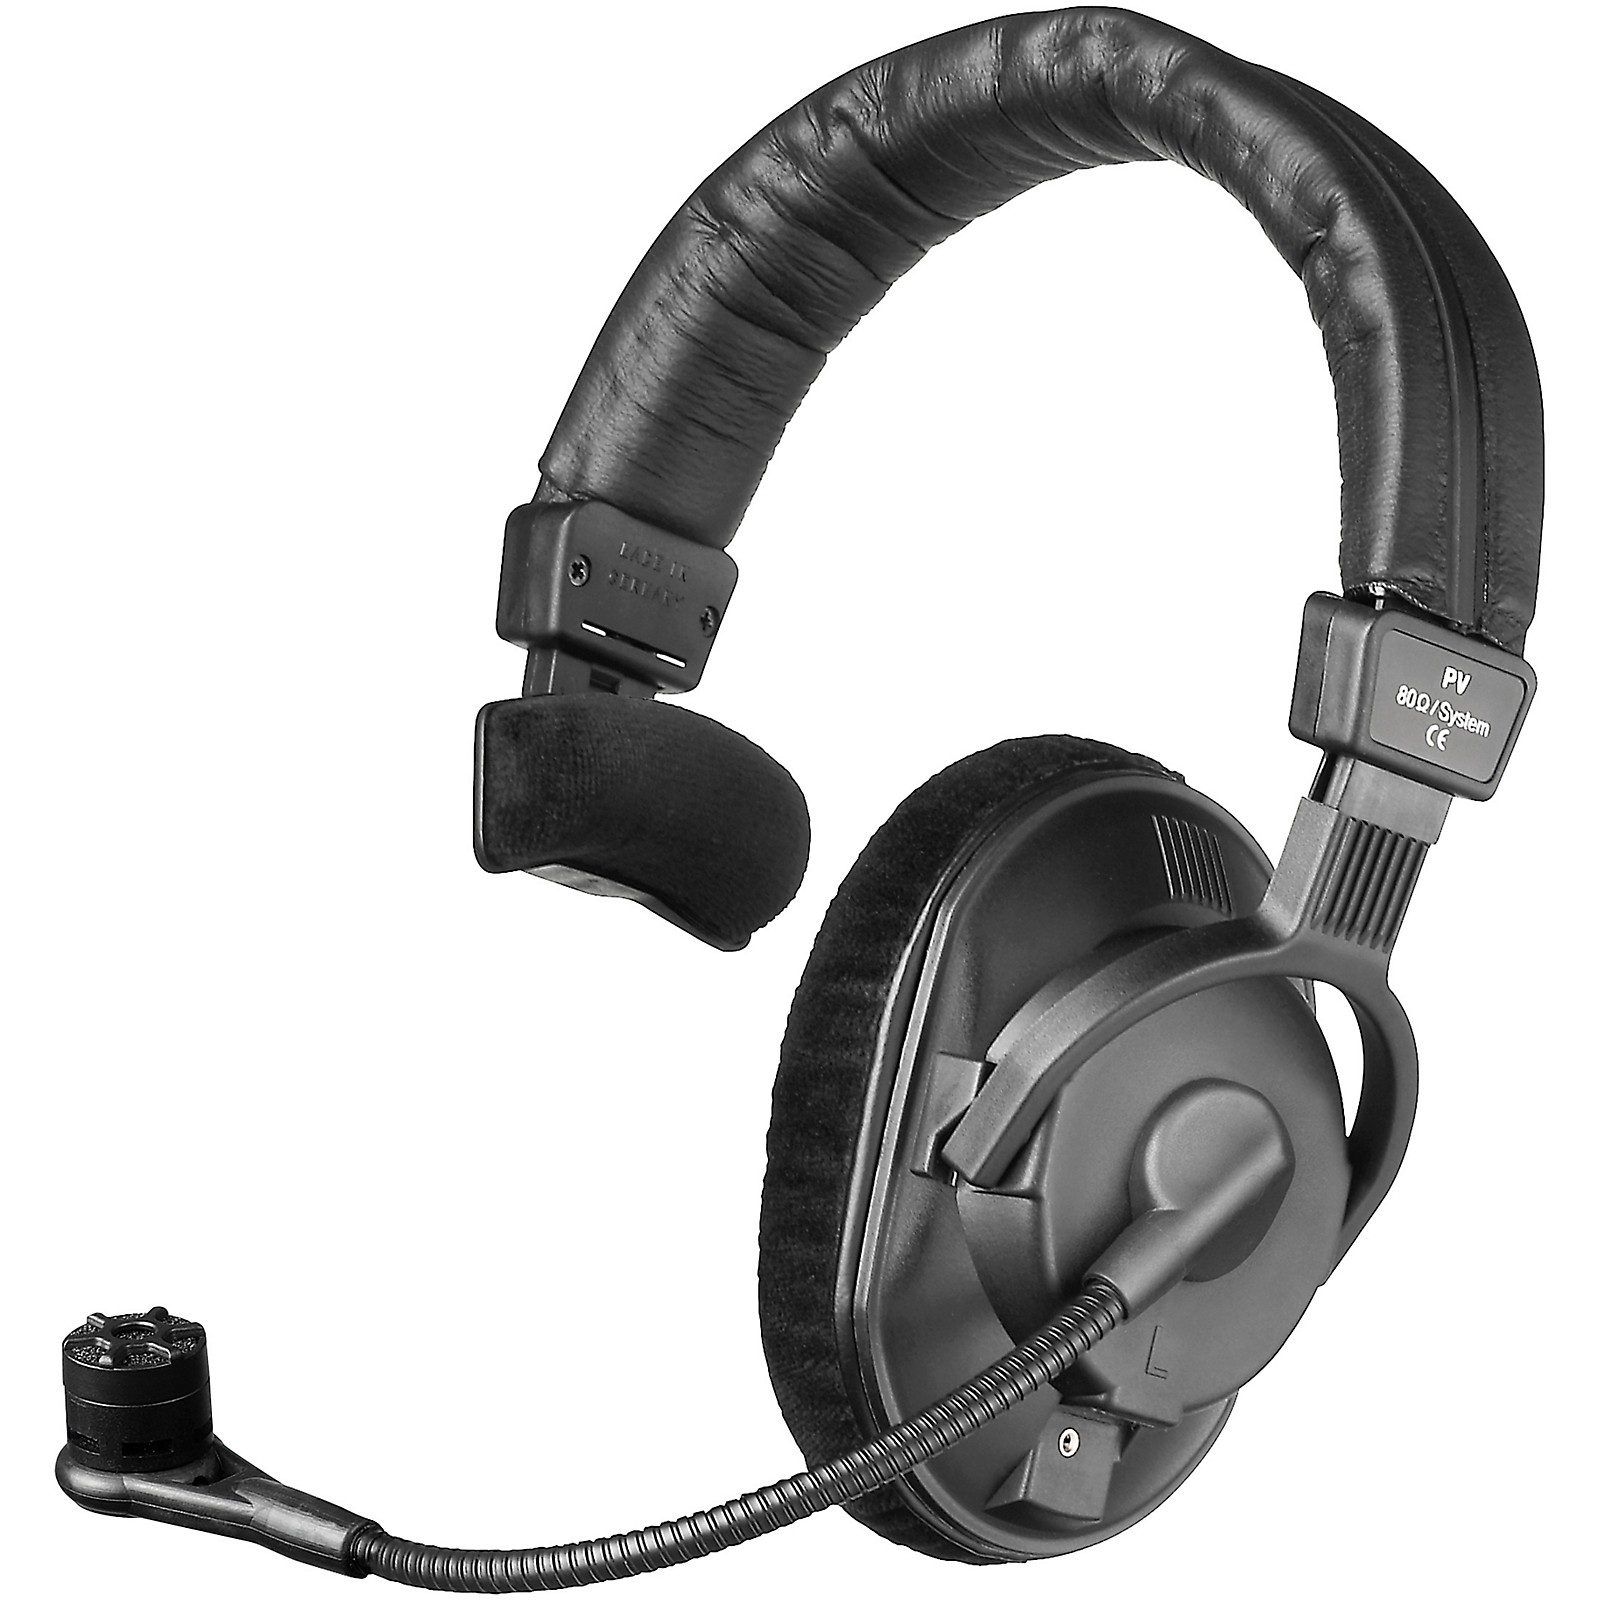 Open Box Beyerdynamic DT 287 PV MKII 250 ohm Single-Sided Headset with Phantom Power Condenser Mic (cable not included)